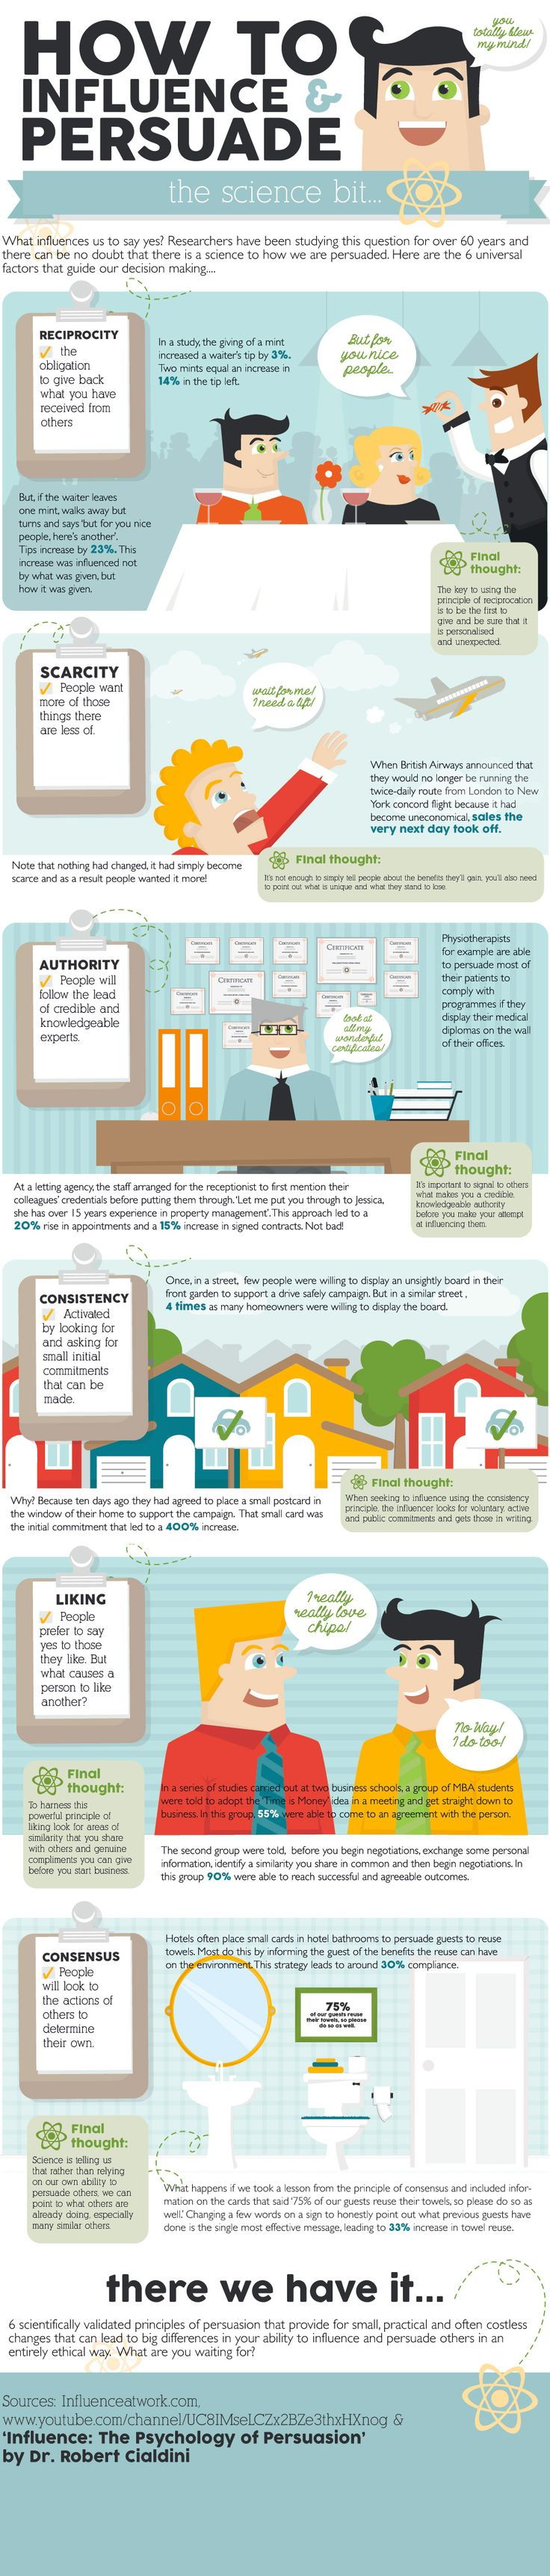 The 6 Elements of Persuasion #Infographic